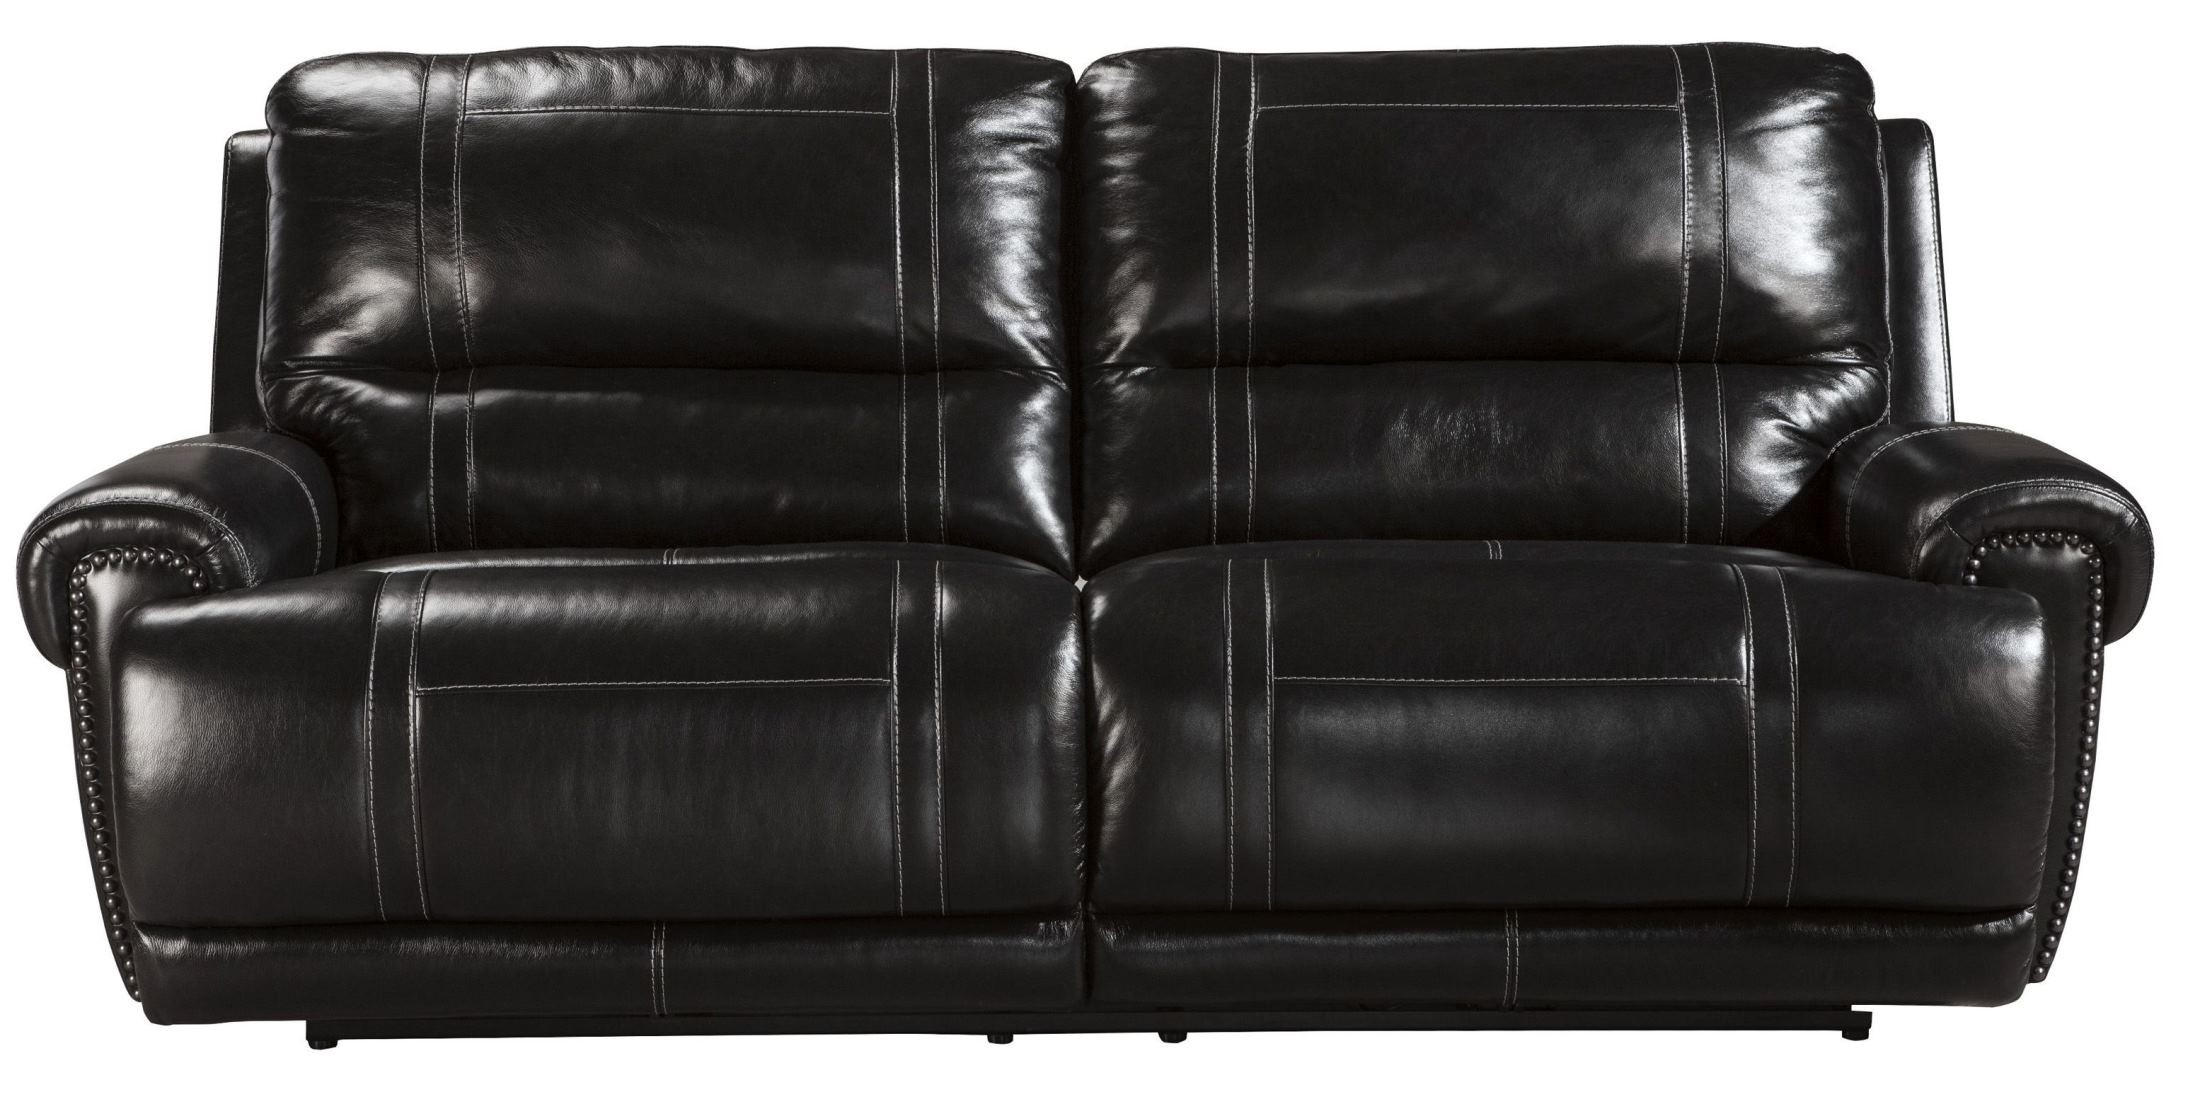 Paron Antique 2 Seat Reclining Sofa from Ashley U